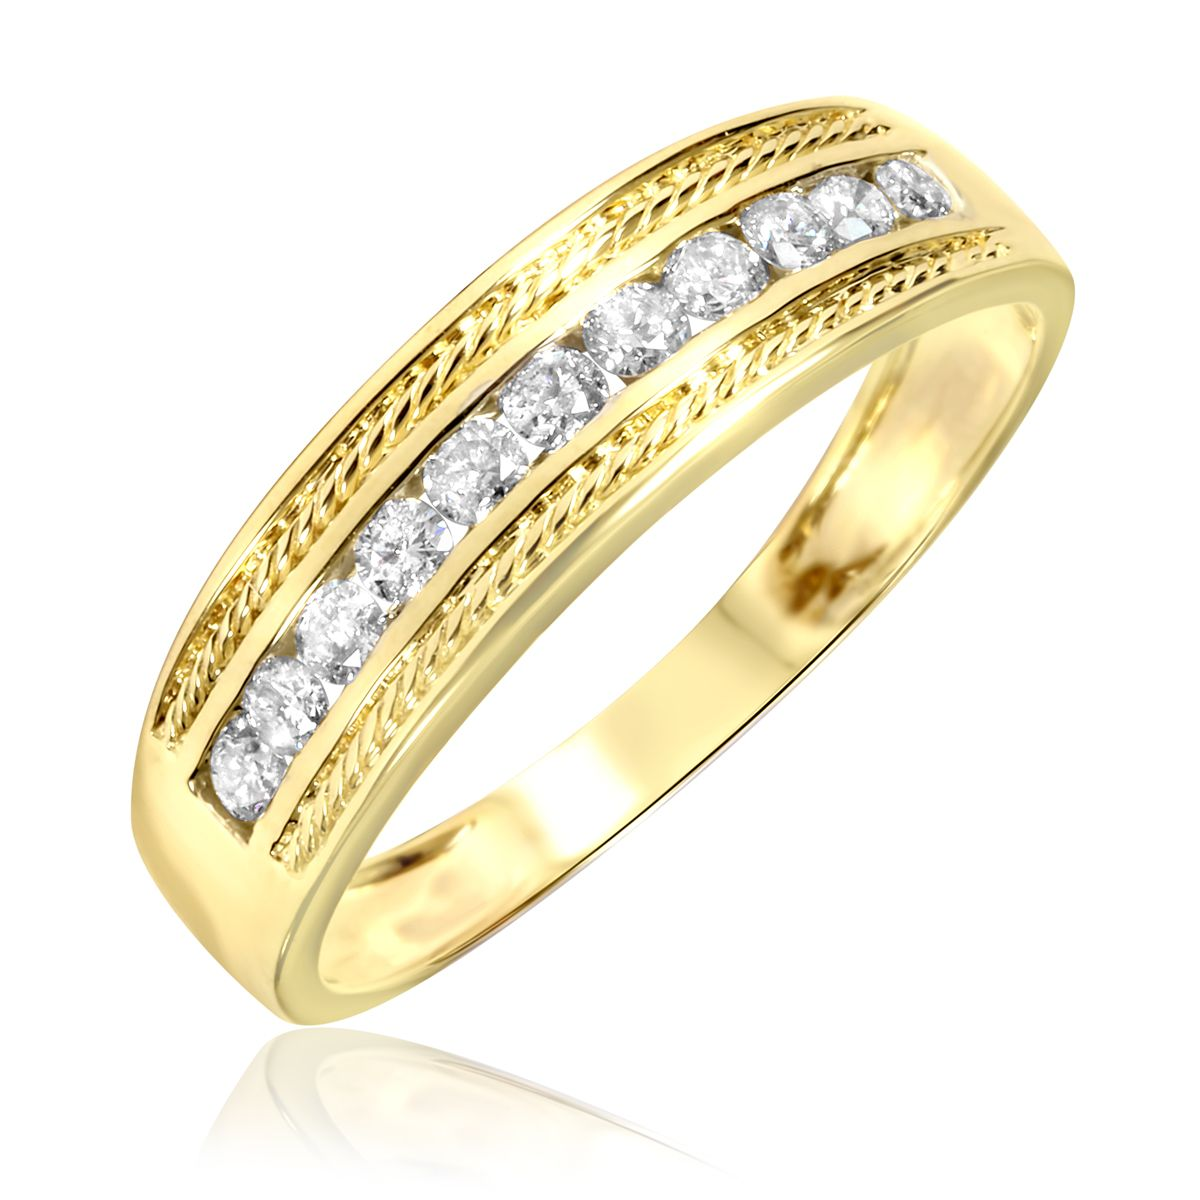 1 3 carat tw diamond men39s wedding ring 14k yellow gold for Wedding gold rings for men